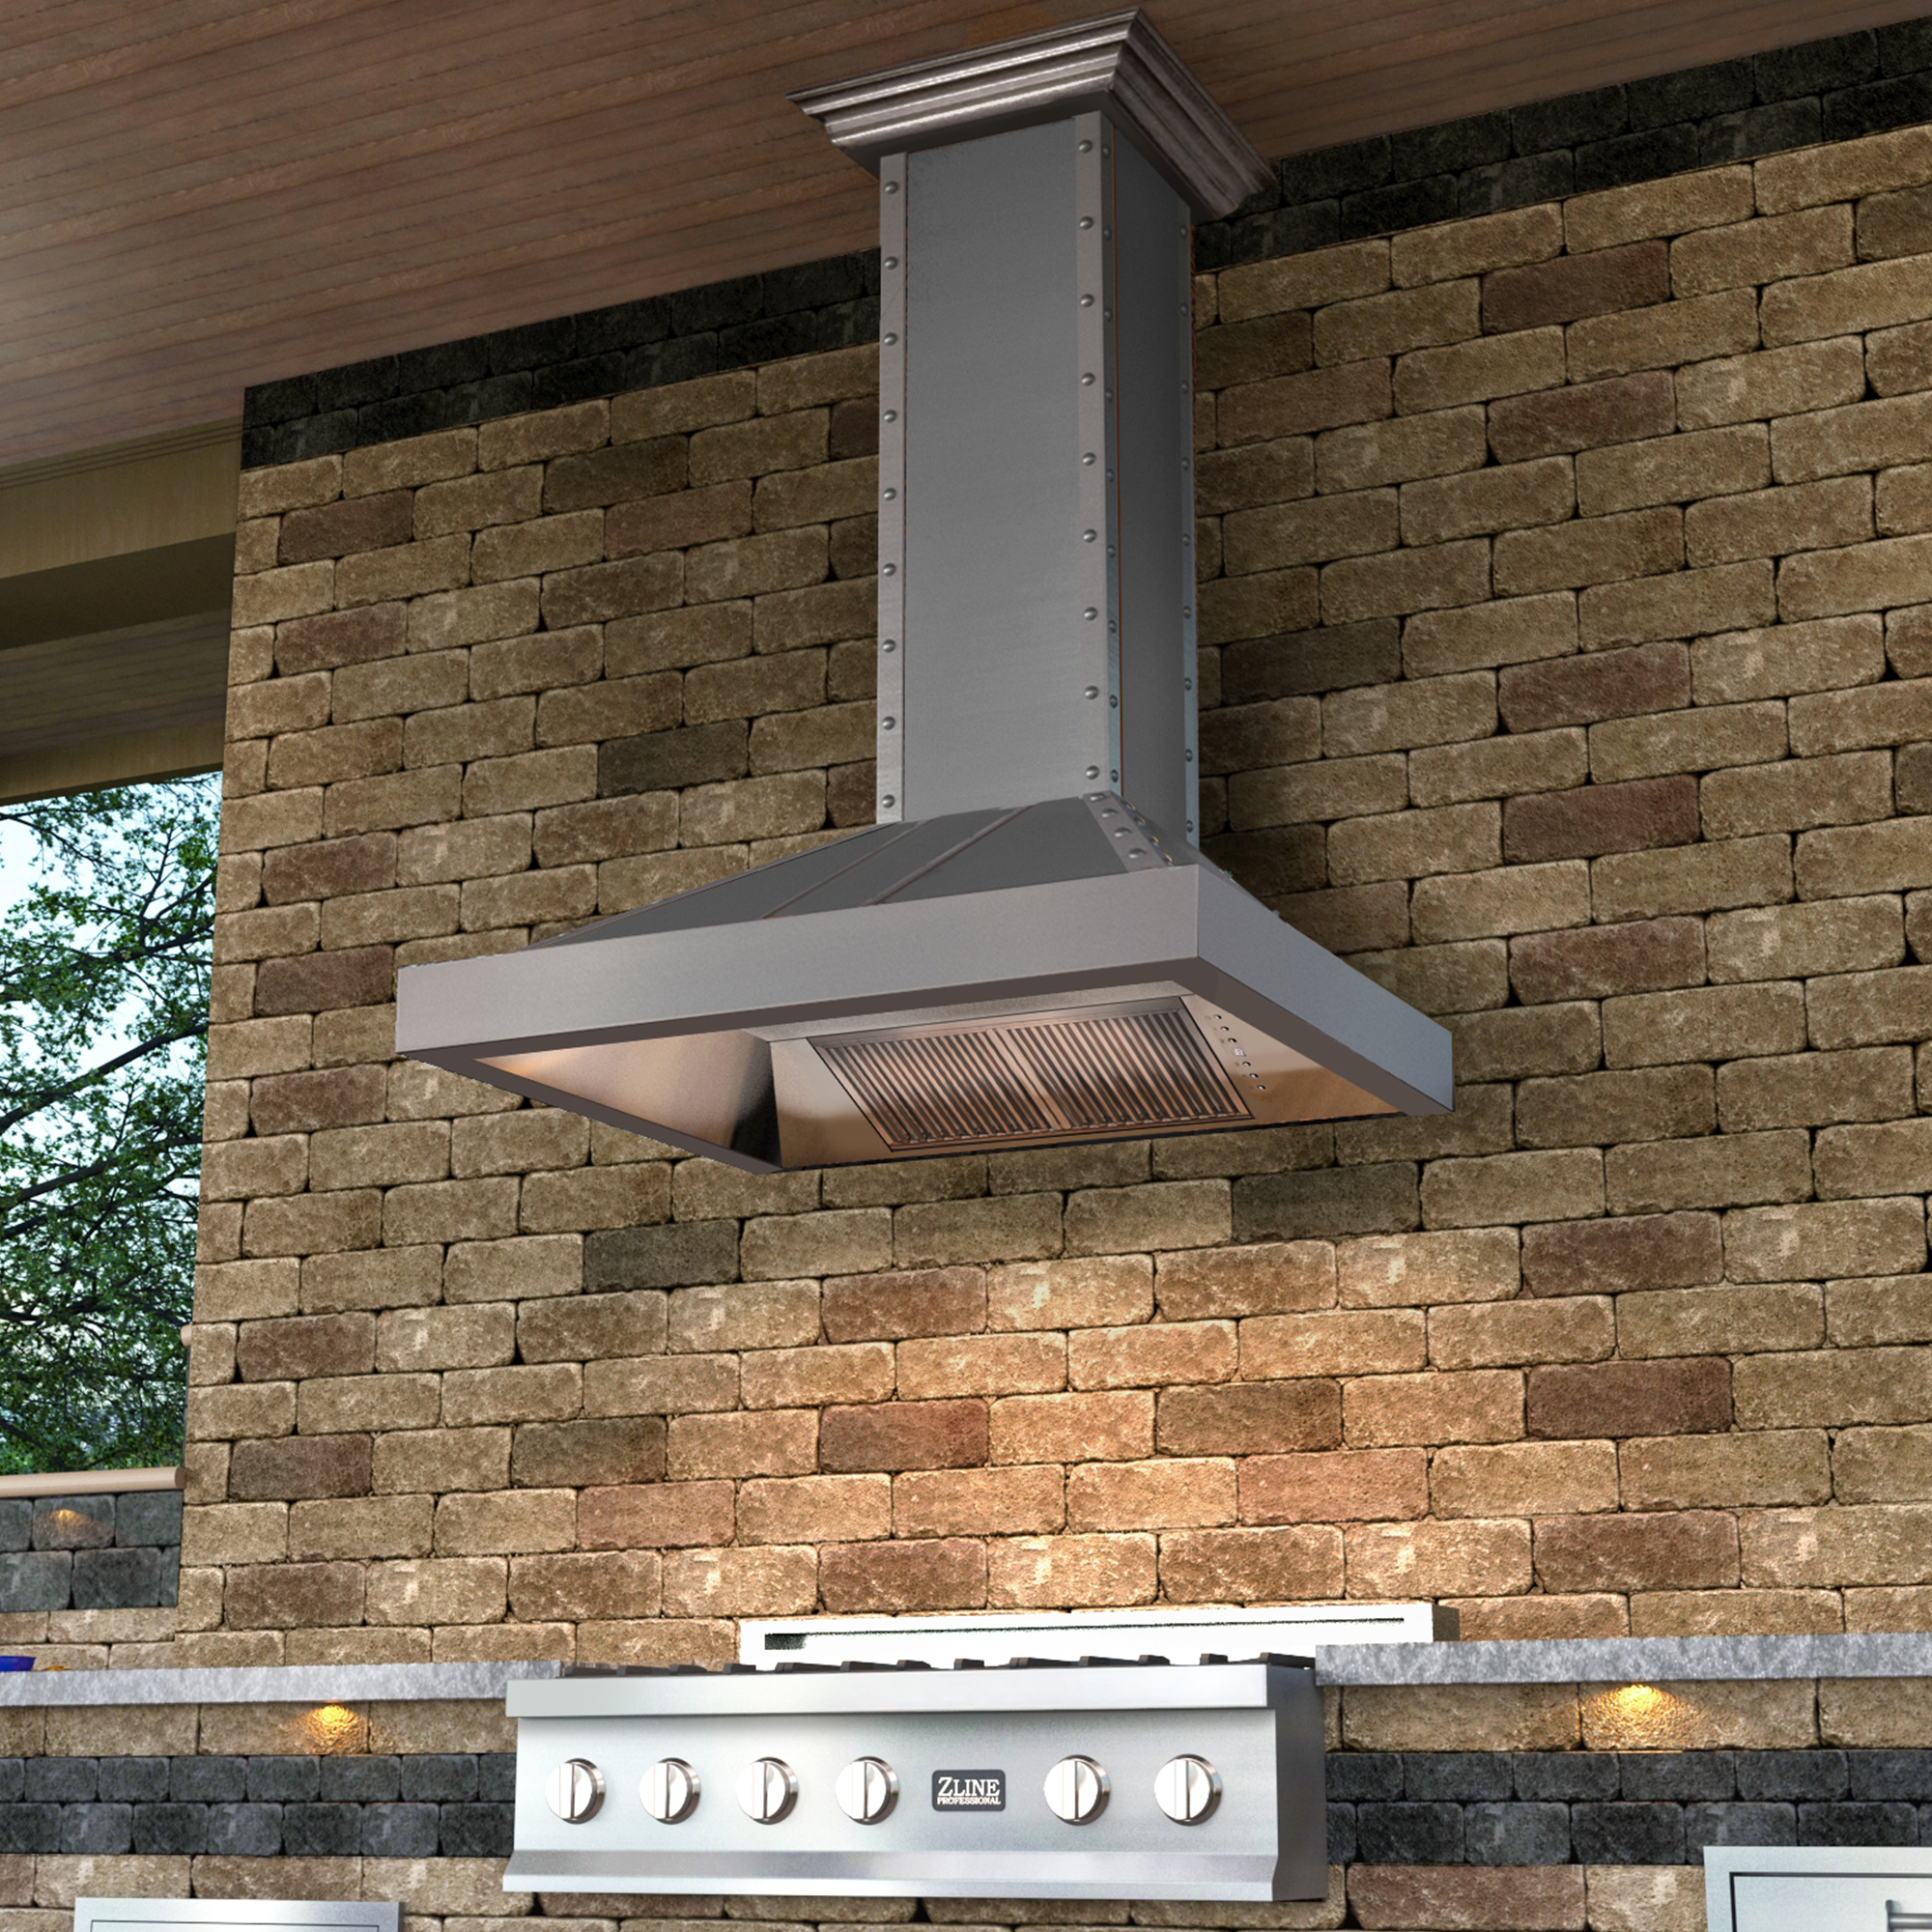 zline-stainless-steel-wall-mounted-range-hood-655-4SSSS-outdoor-2.jpg